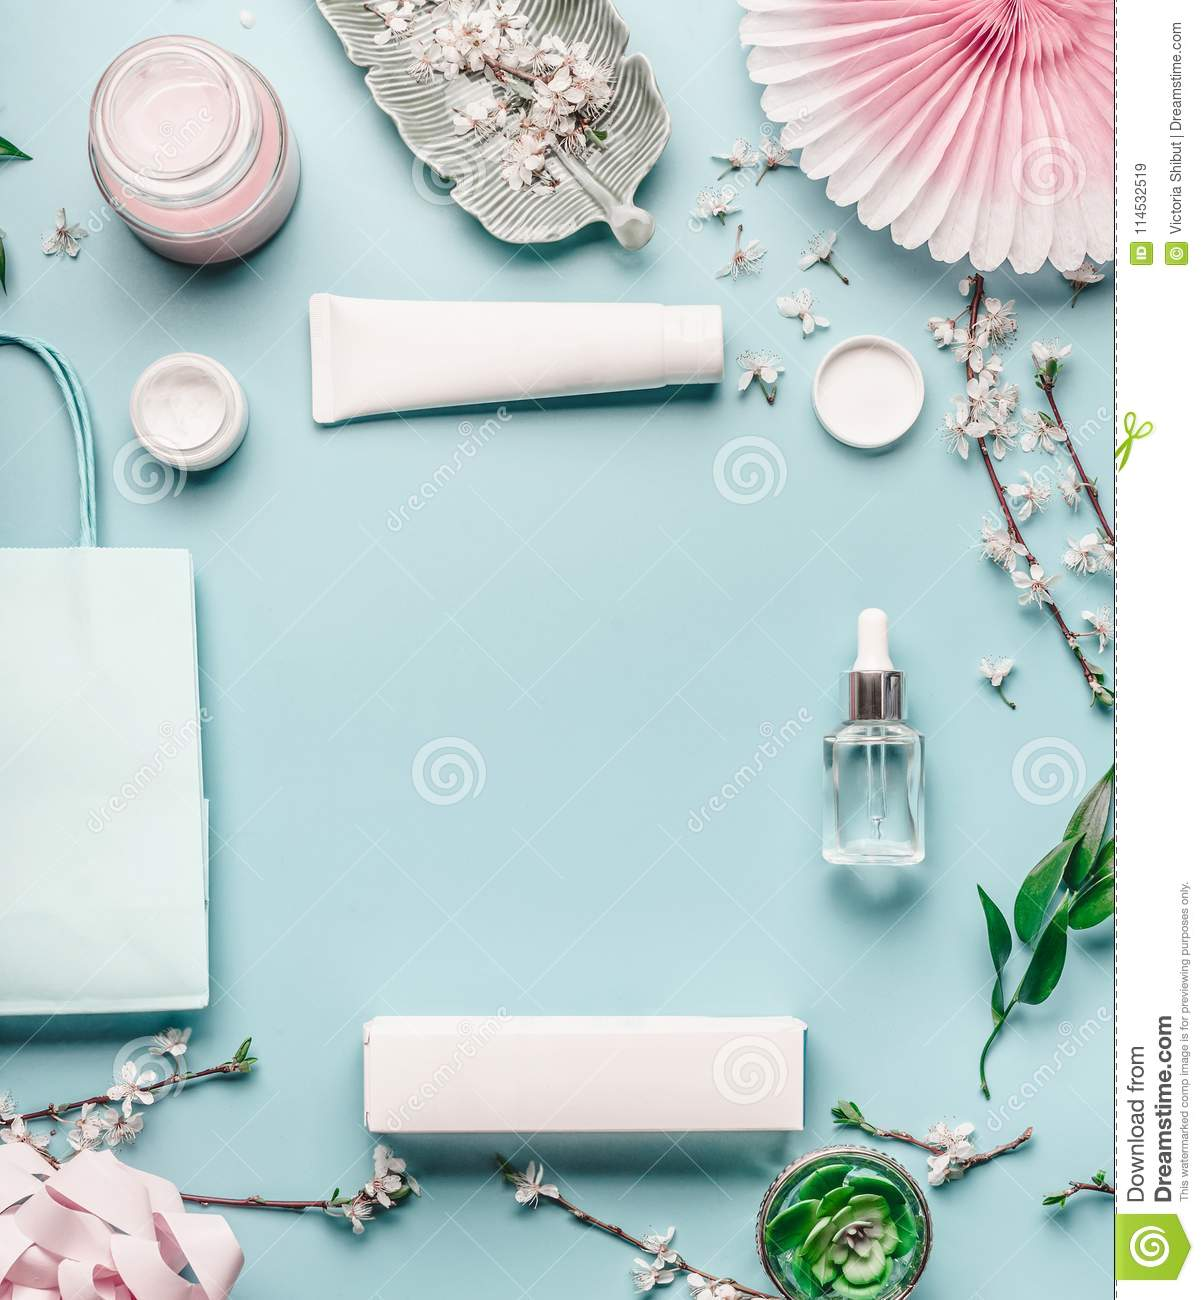 Beauty background with facial cosmetic products, shopping bag and twigs with cherry blossom on pastel blue desktop background.